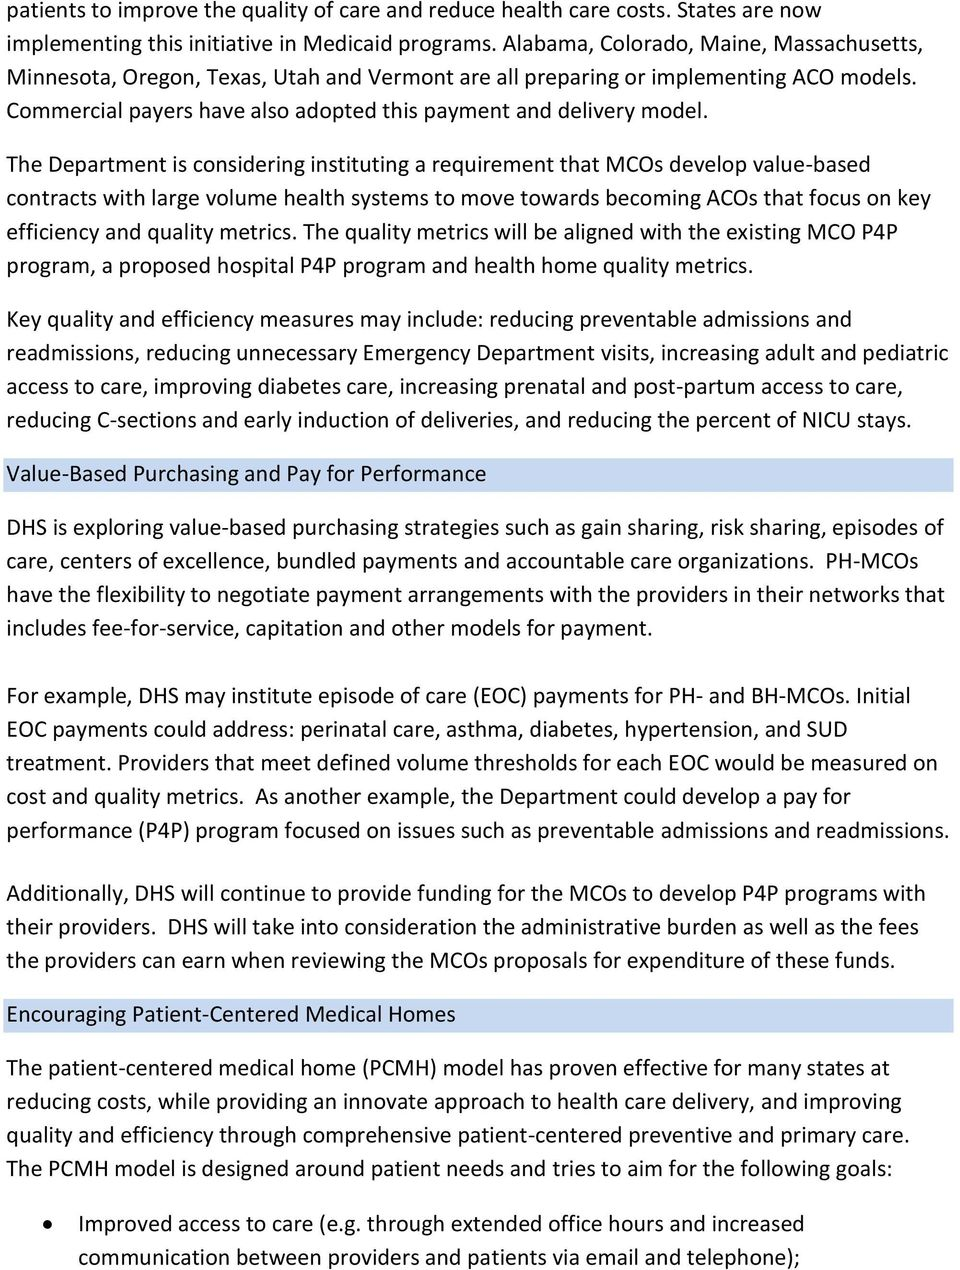 The Department is considering instituting a requirement that MCOs develop value-based contracts with large volume health systems to move towards becoming ACOs that focus on key efficiency and quality